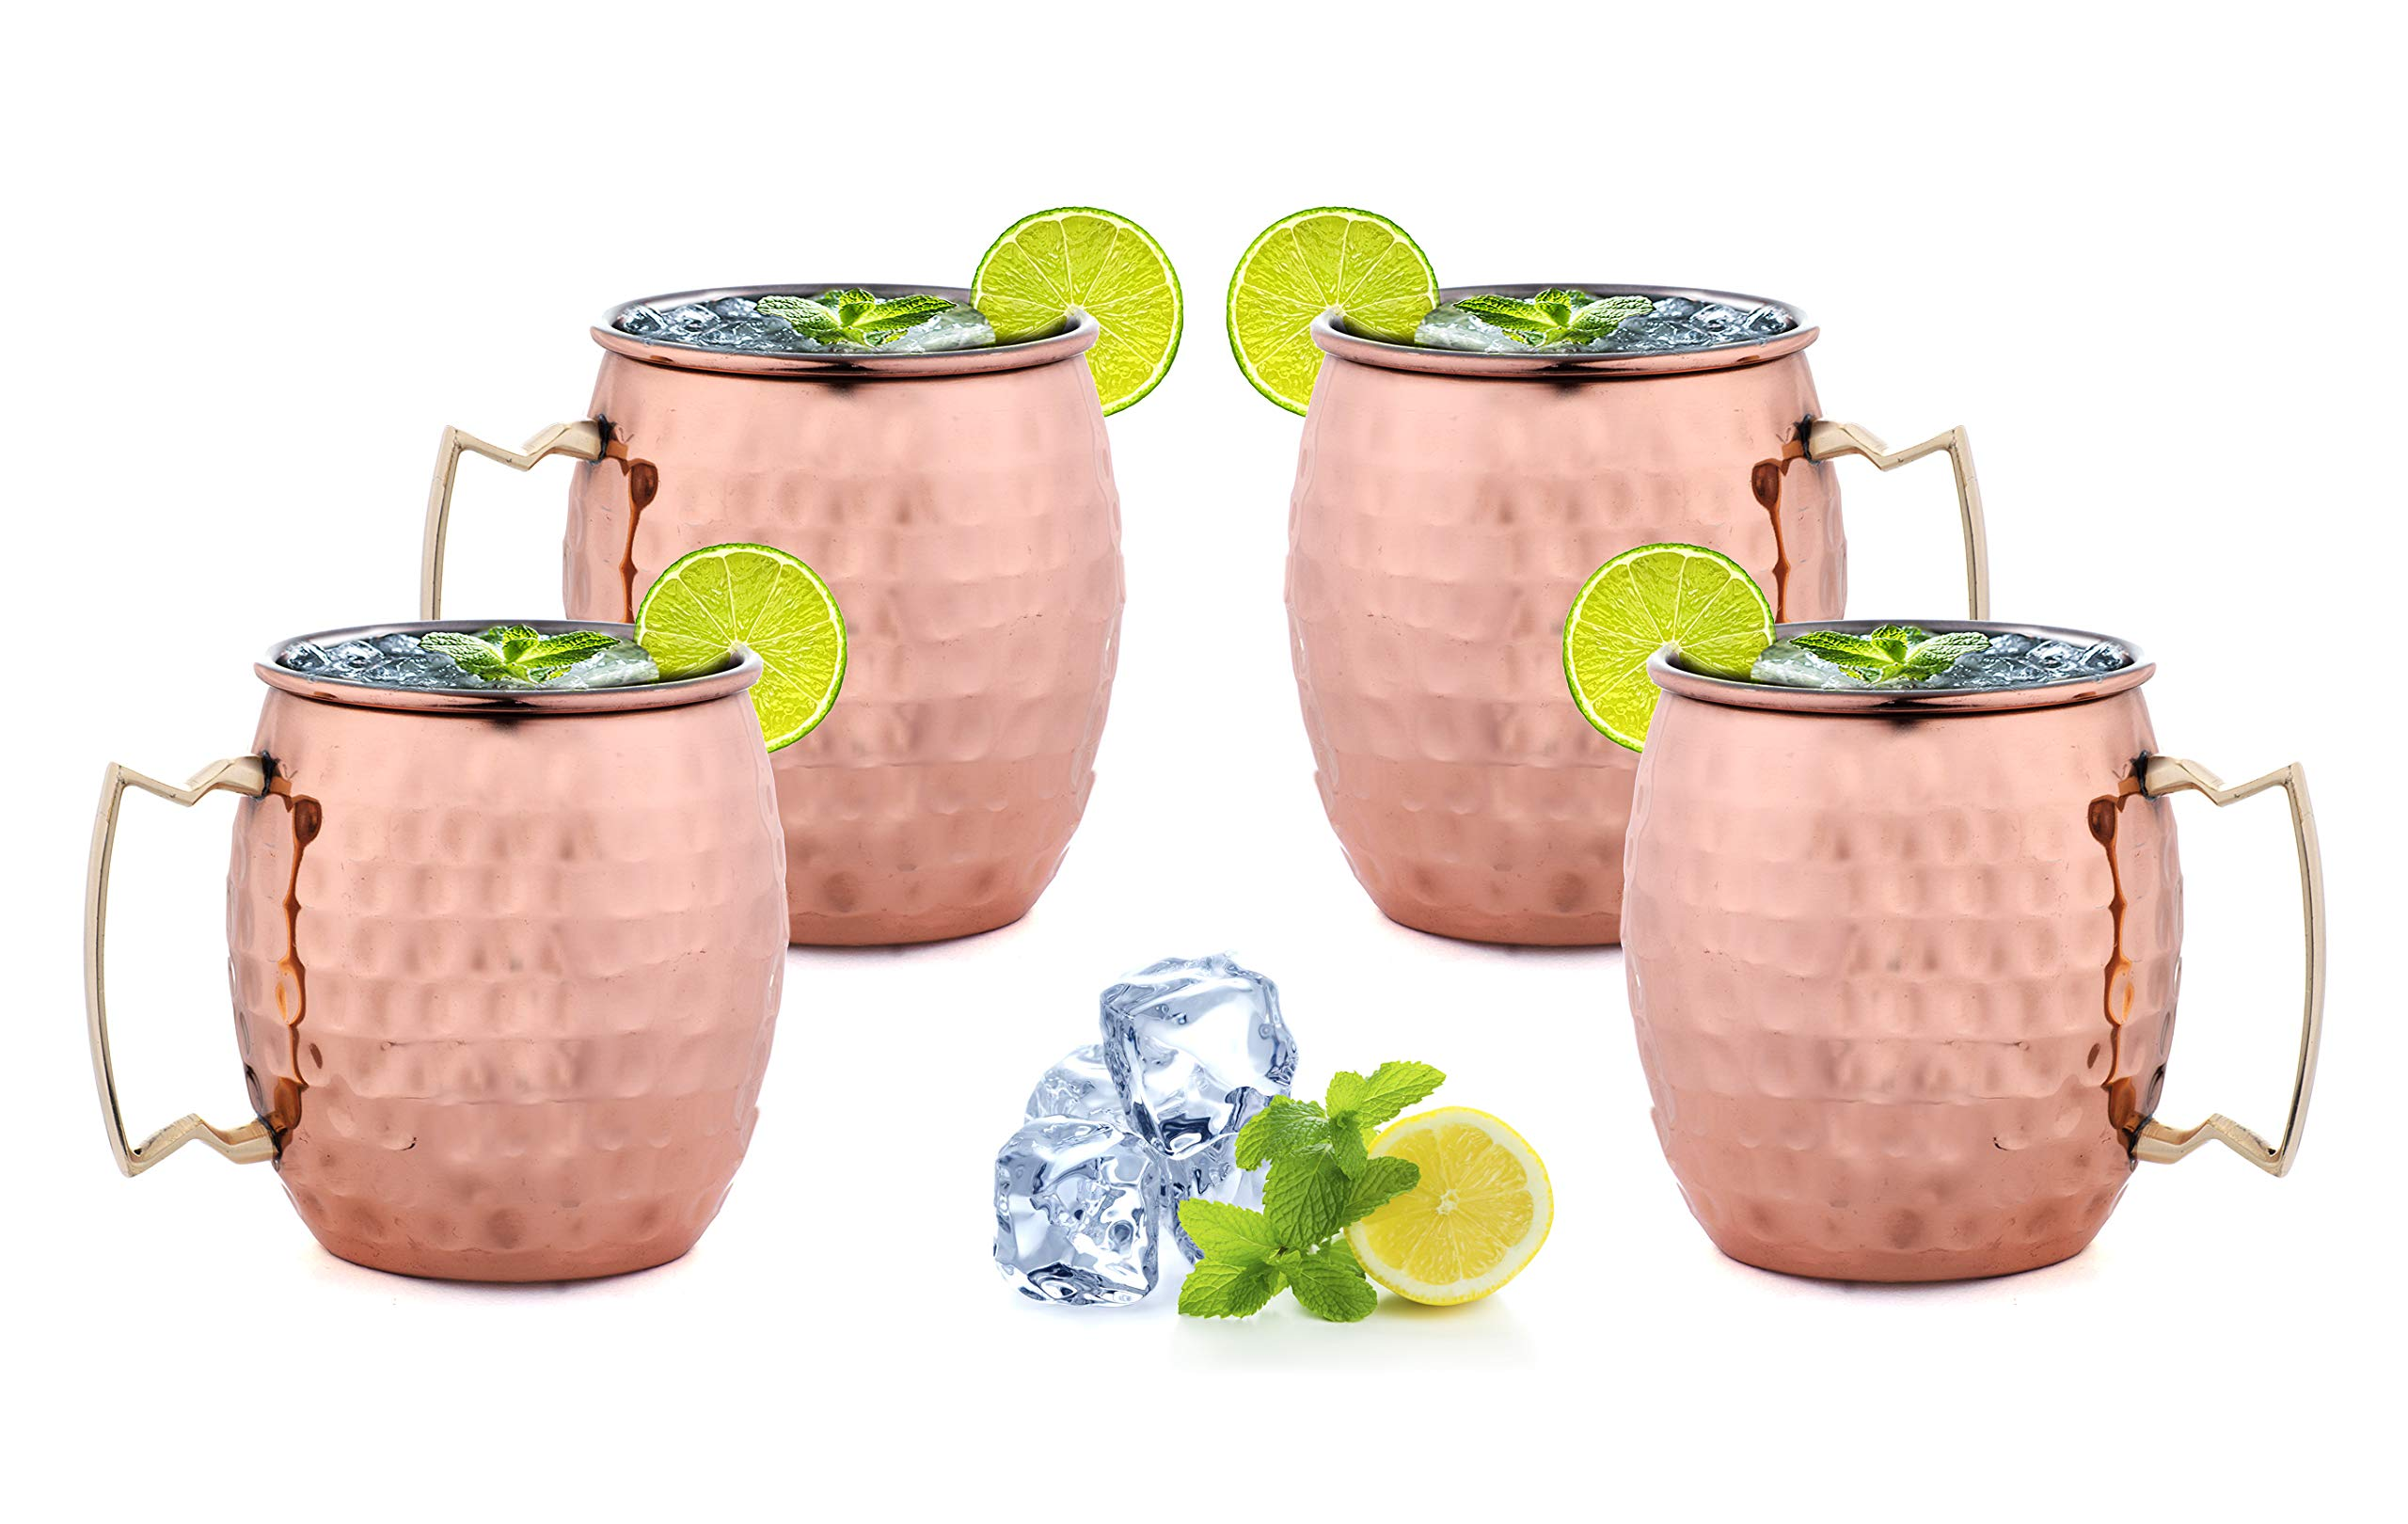 ARTISANS VILLAGE Moscow Mule Copper Mugs, 100% HANDCRAFTED, Food-safe Copper Mugs with Brass Handle and Stainless-Steel Lining, Highest Quality Cocktail 16 Oz (Set of 4, Hammered)